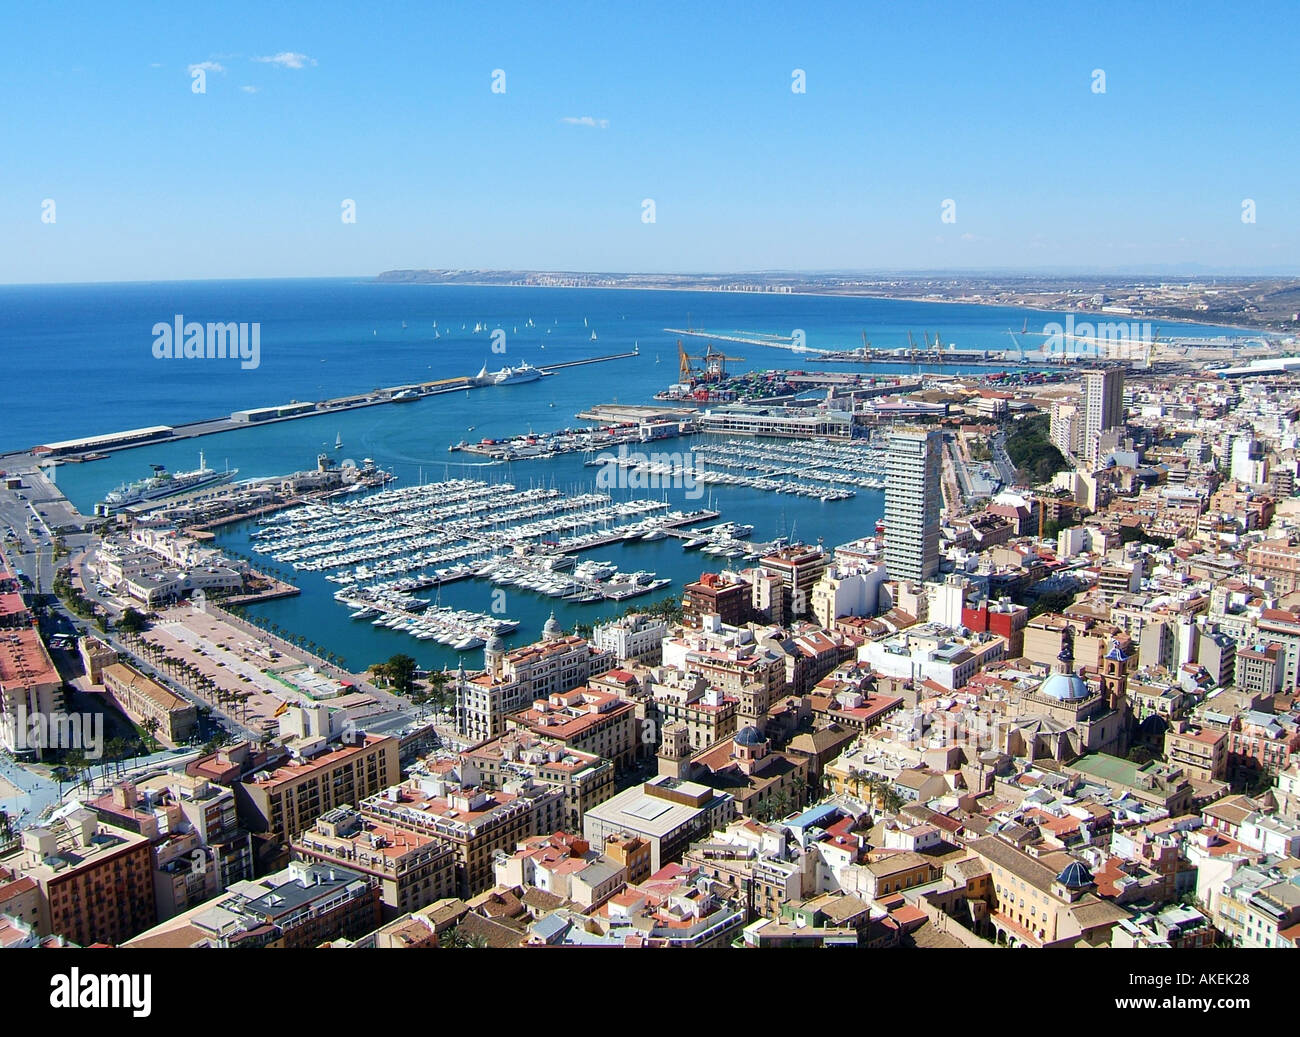 Aerial view of the port and old city of alicante valencia spain stock photo royalty free image - Stock uno alicante ...